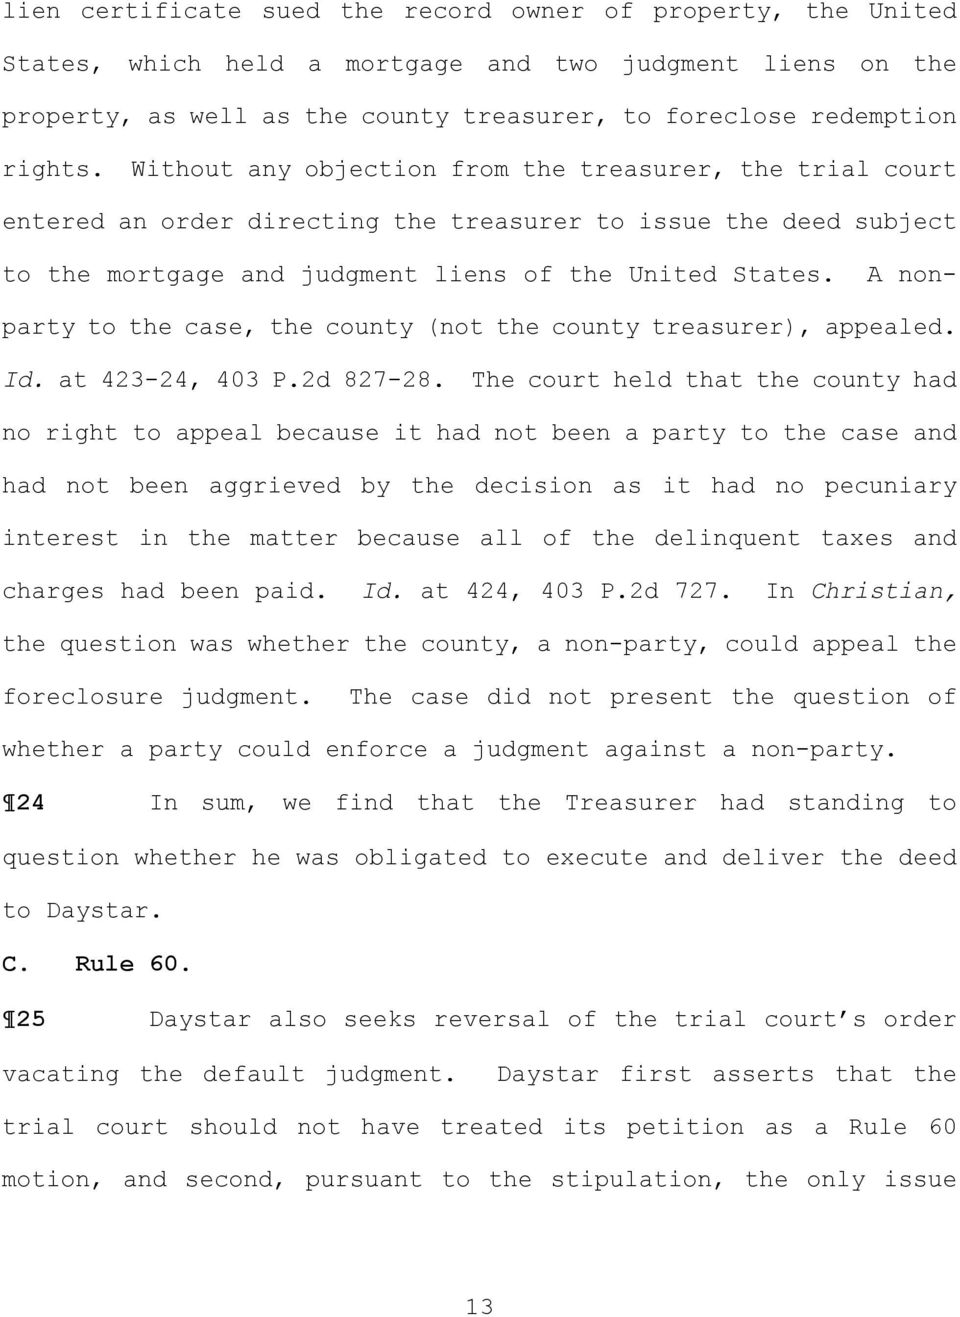 A nonparty to the case, the county (not the county treasurer, appealed. Id. at 423-24, 403 P.2d 827-28.